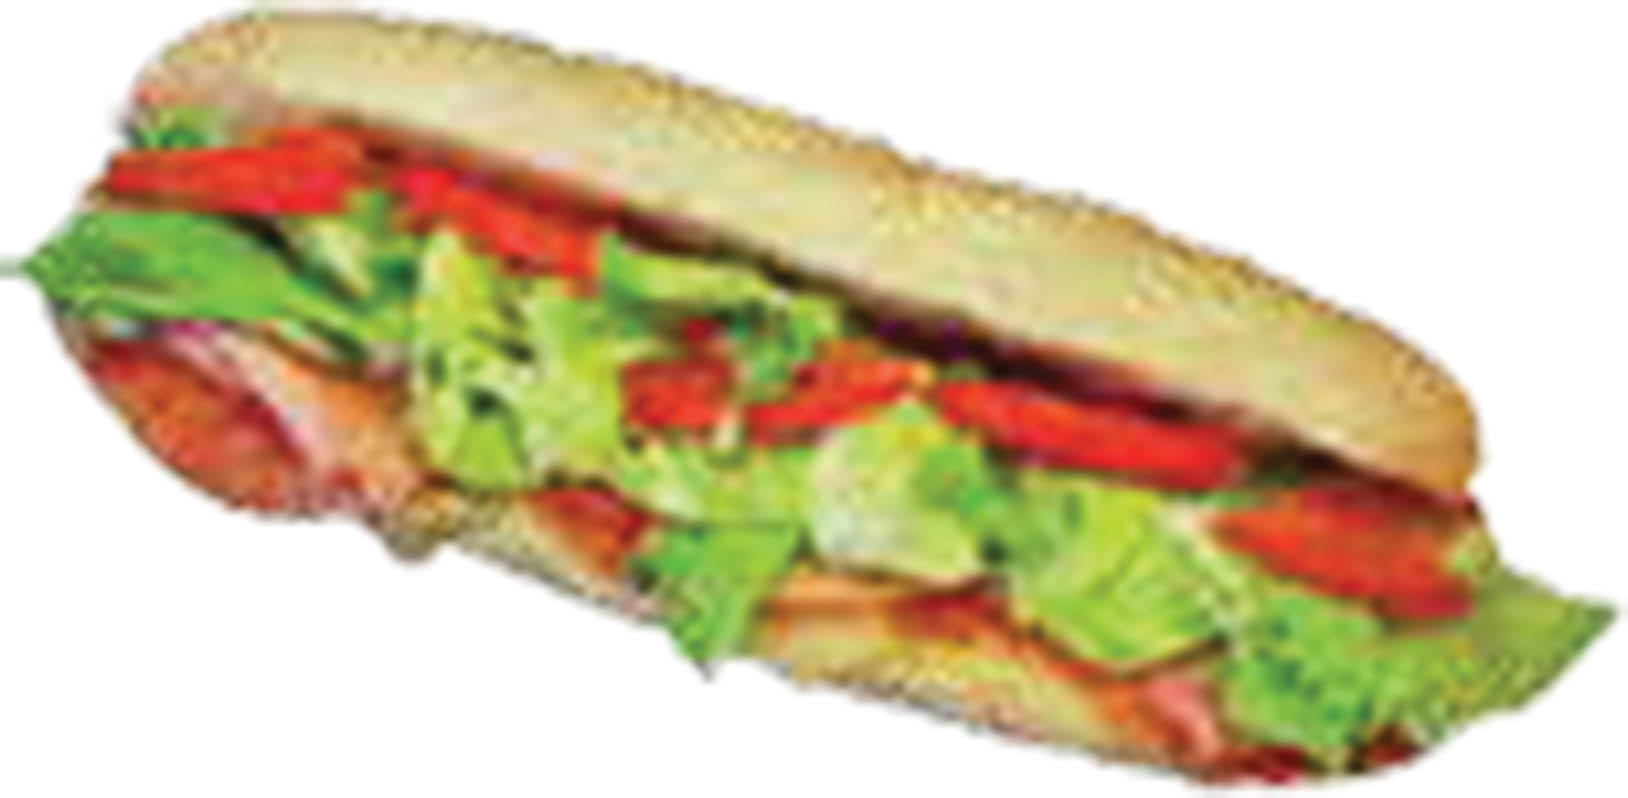 Picture of sub at Toarmina's in Taylor, MI